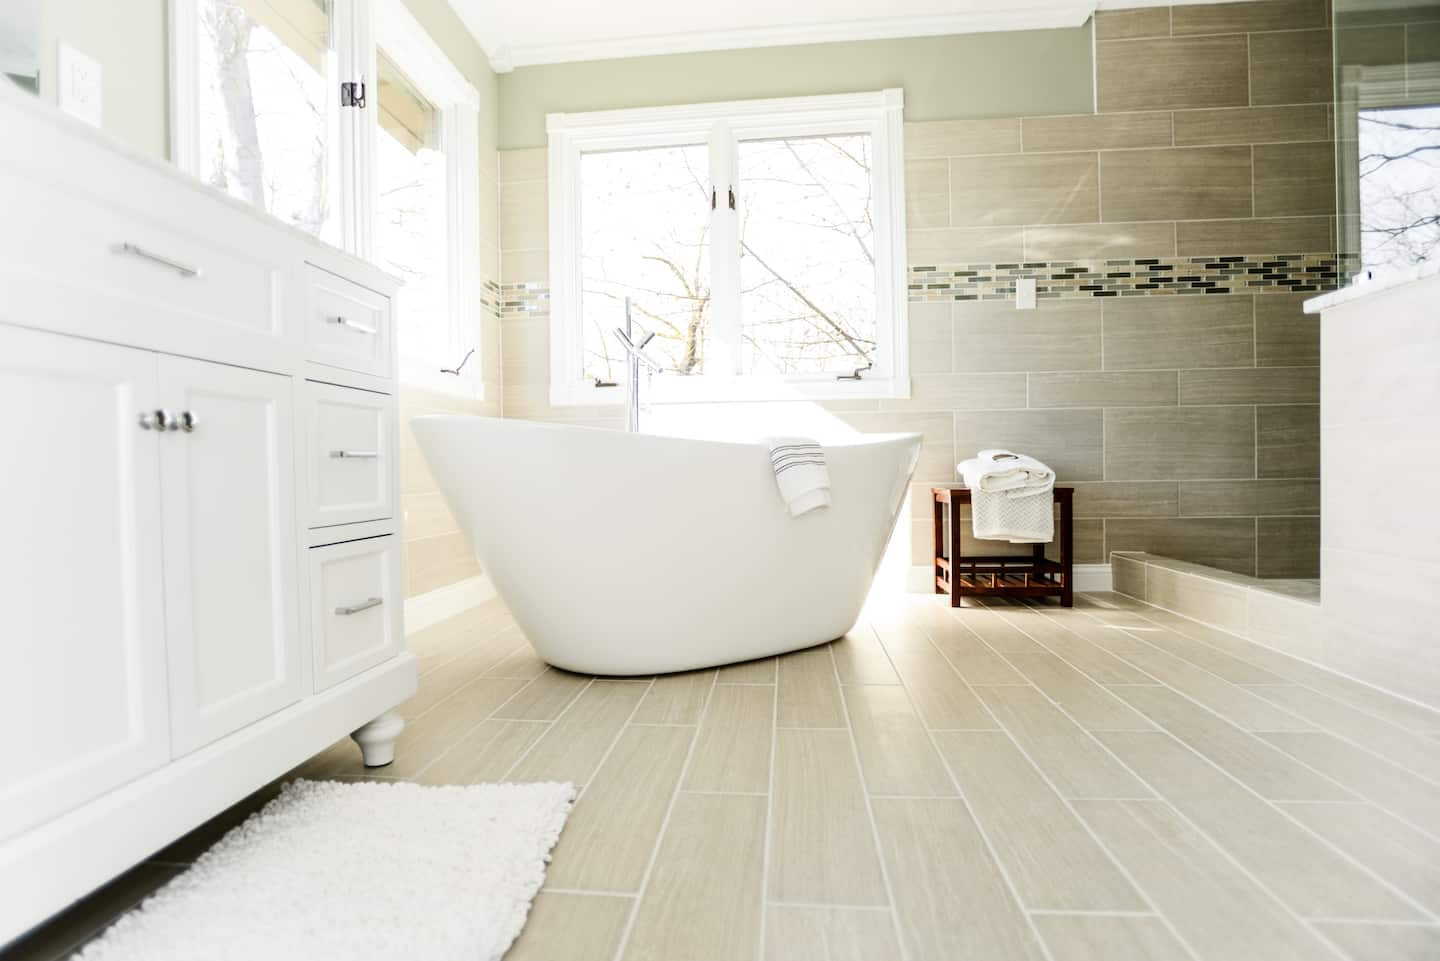 How Much Does A Bathroom Remodel Cost Angies List - How much does it cost to redo a bathroom for small bathroom ideas